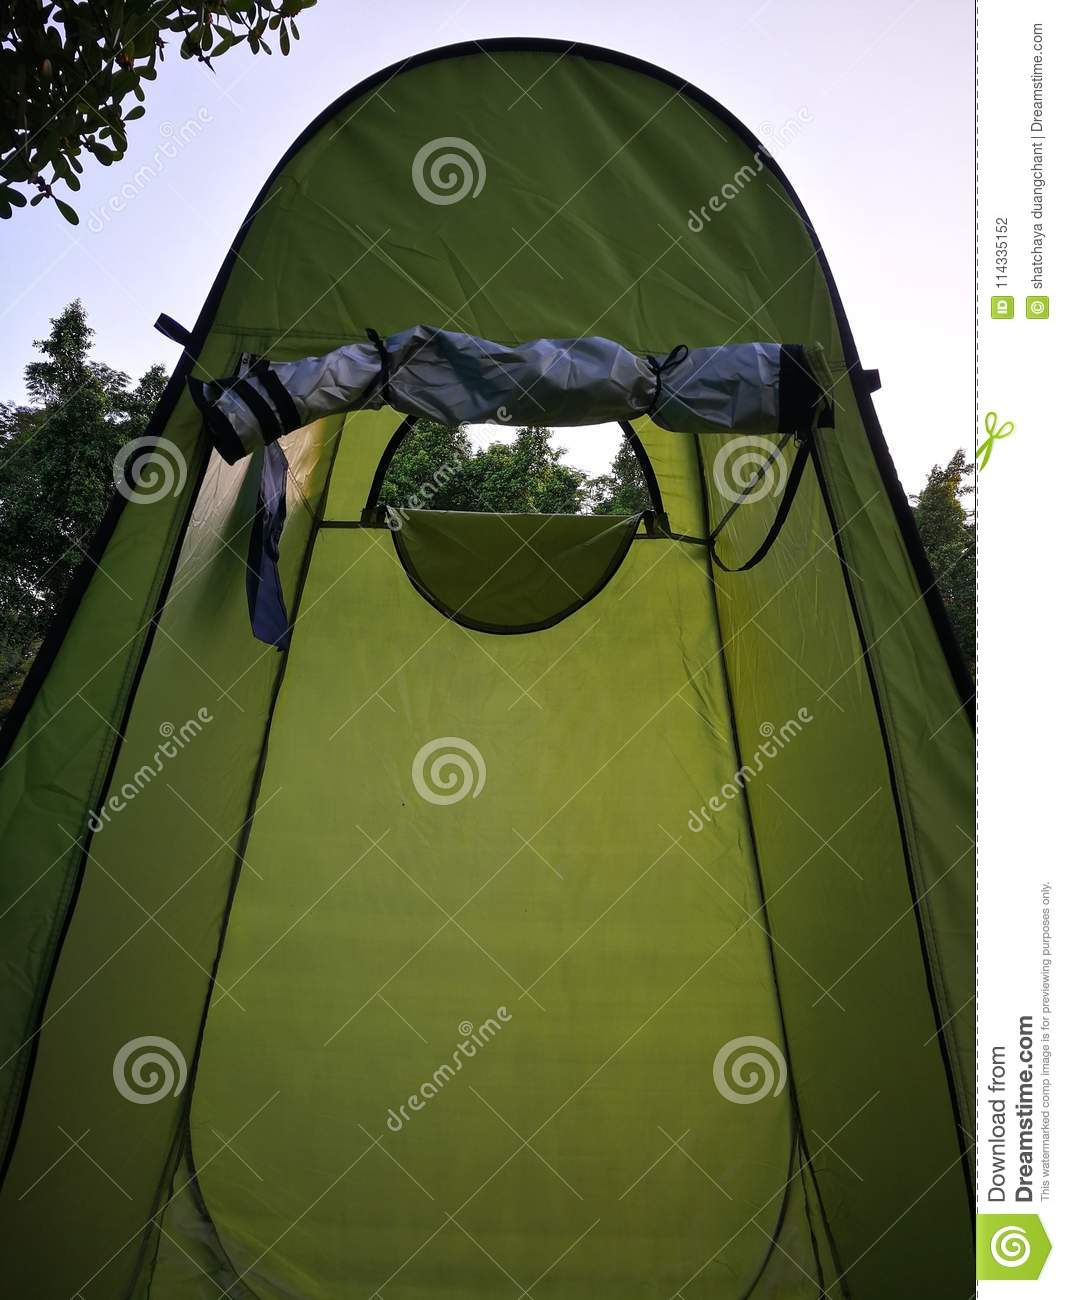 Bathroom tents for c&er wear or change clothes outdoor & Bathroom Tents For Camper Wear Or Change Clothes Outdoor Stock Photo ...